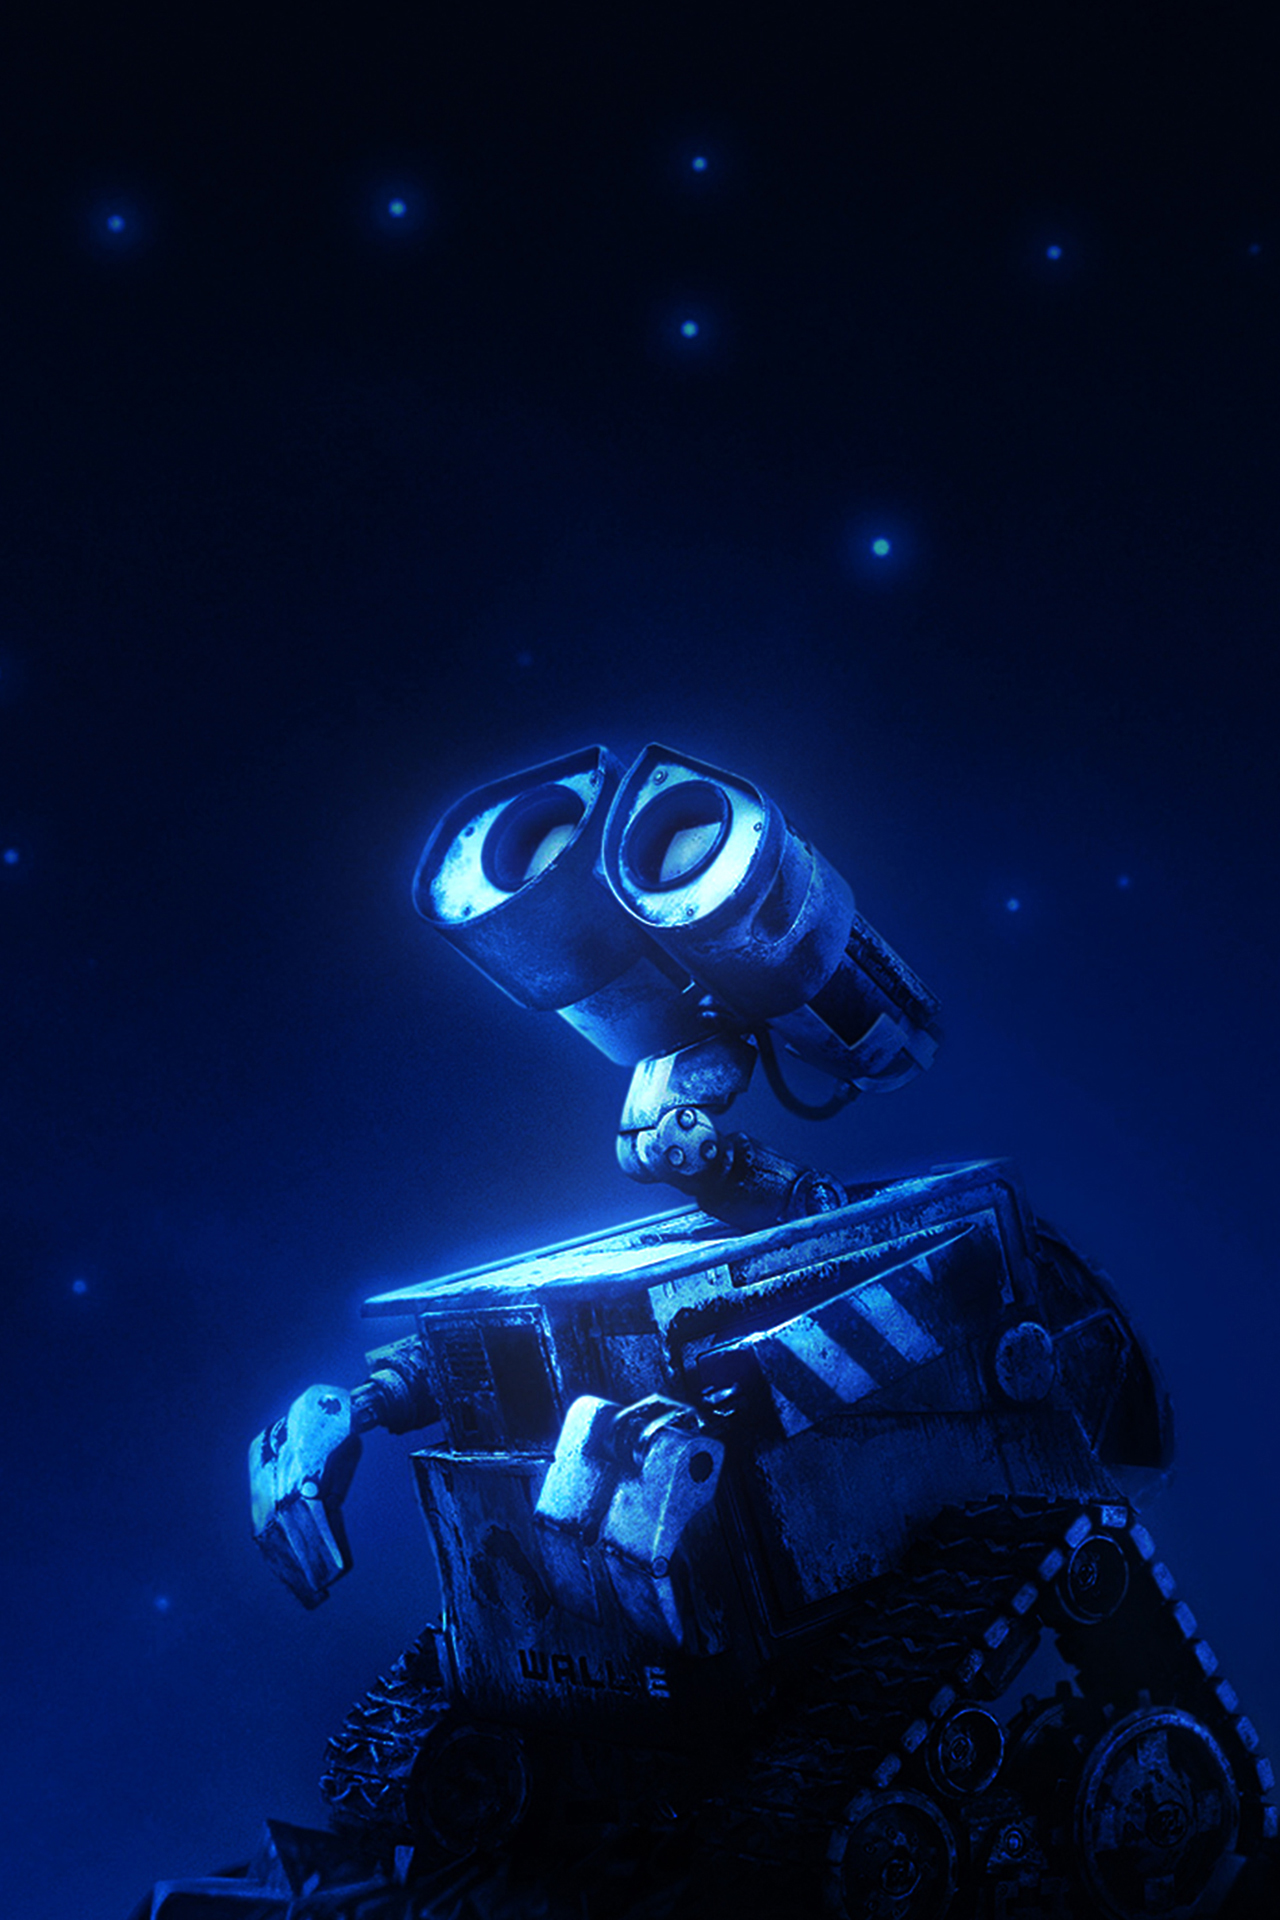 custom wall-e wallpaper